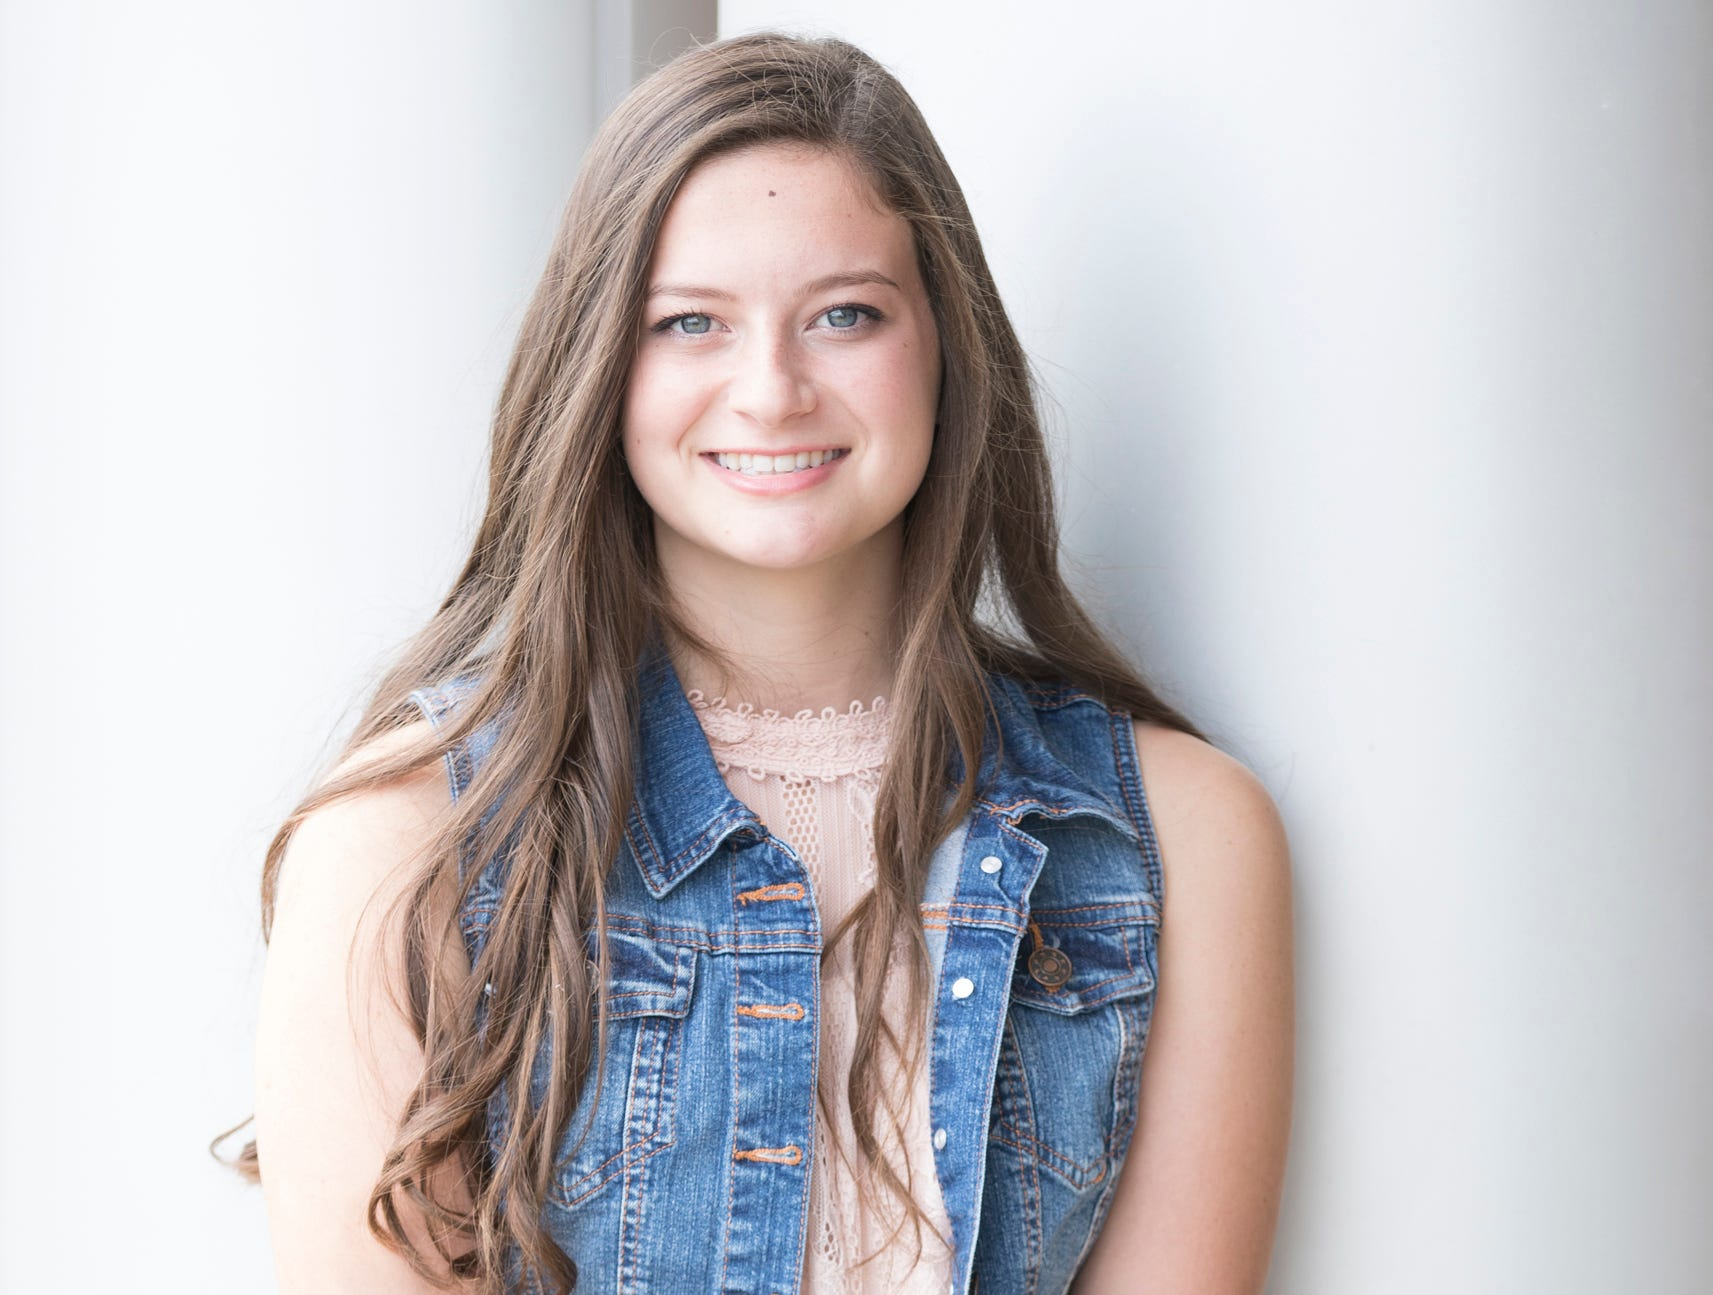 Chloe Davis is the 17-year-old daughter of Jason and Mandy Davis. She is representing the Clarksburg Jolly Beef Feeders. She attends Adena High School.